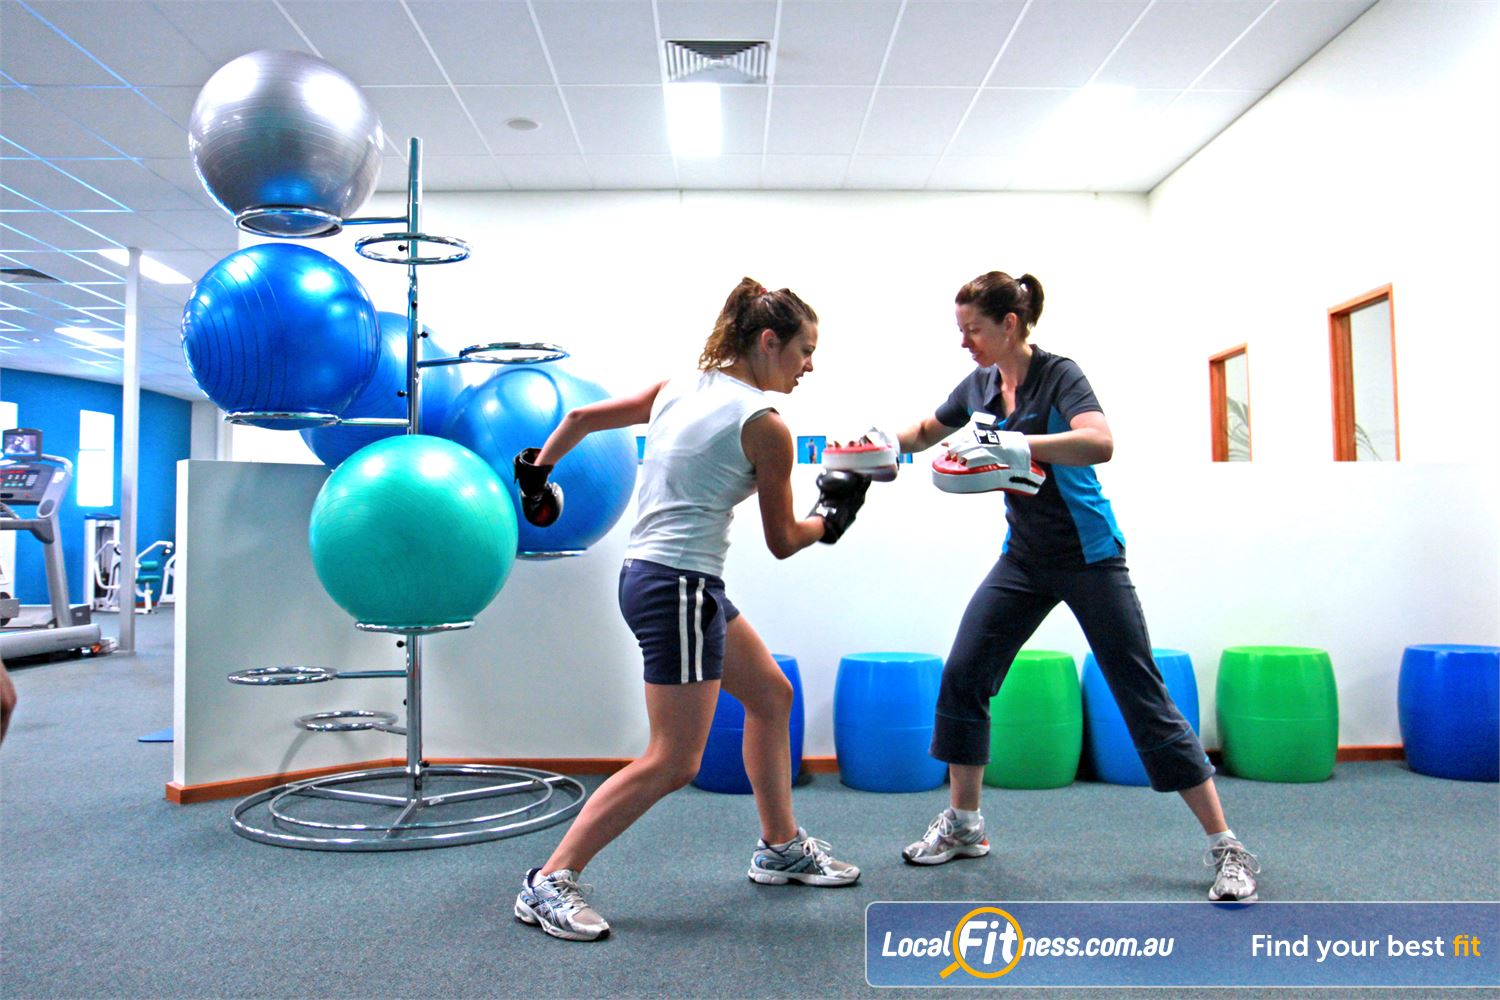 Fernwood Fitness Near Barrabool Waurn Ponds personal trainers can incorporate cardio boxing into your workout.